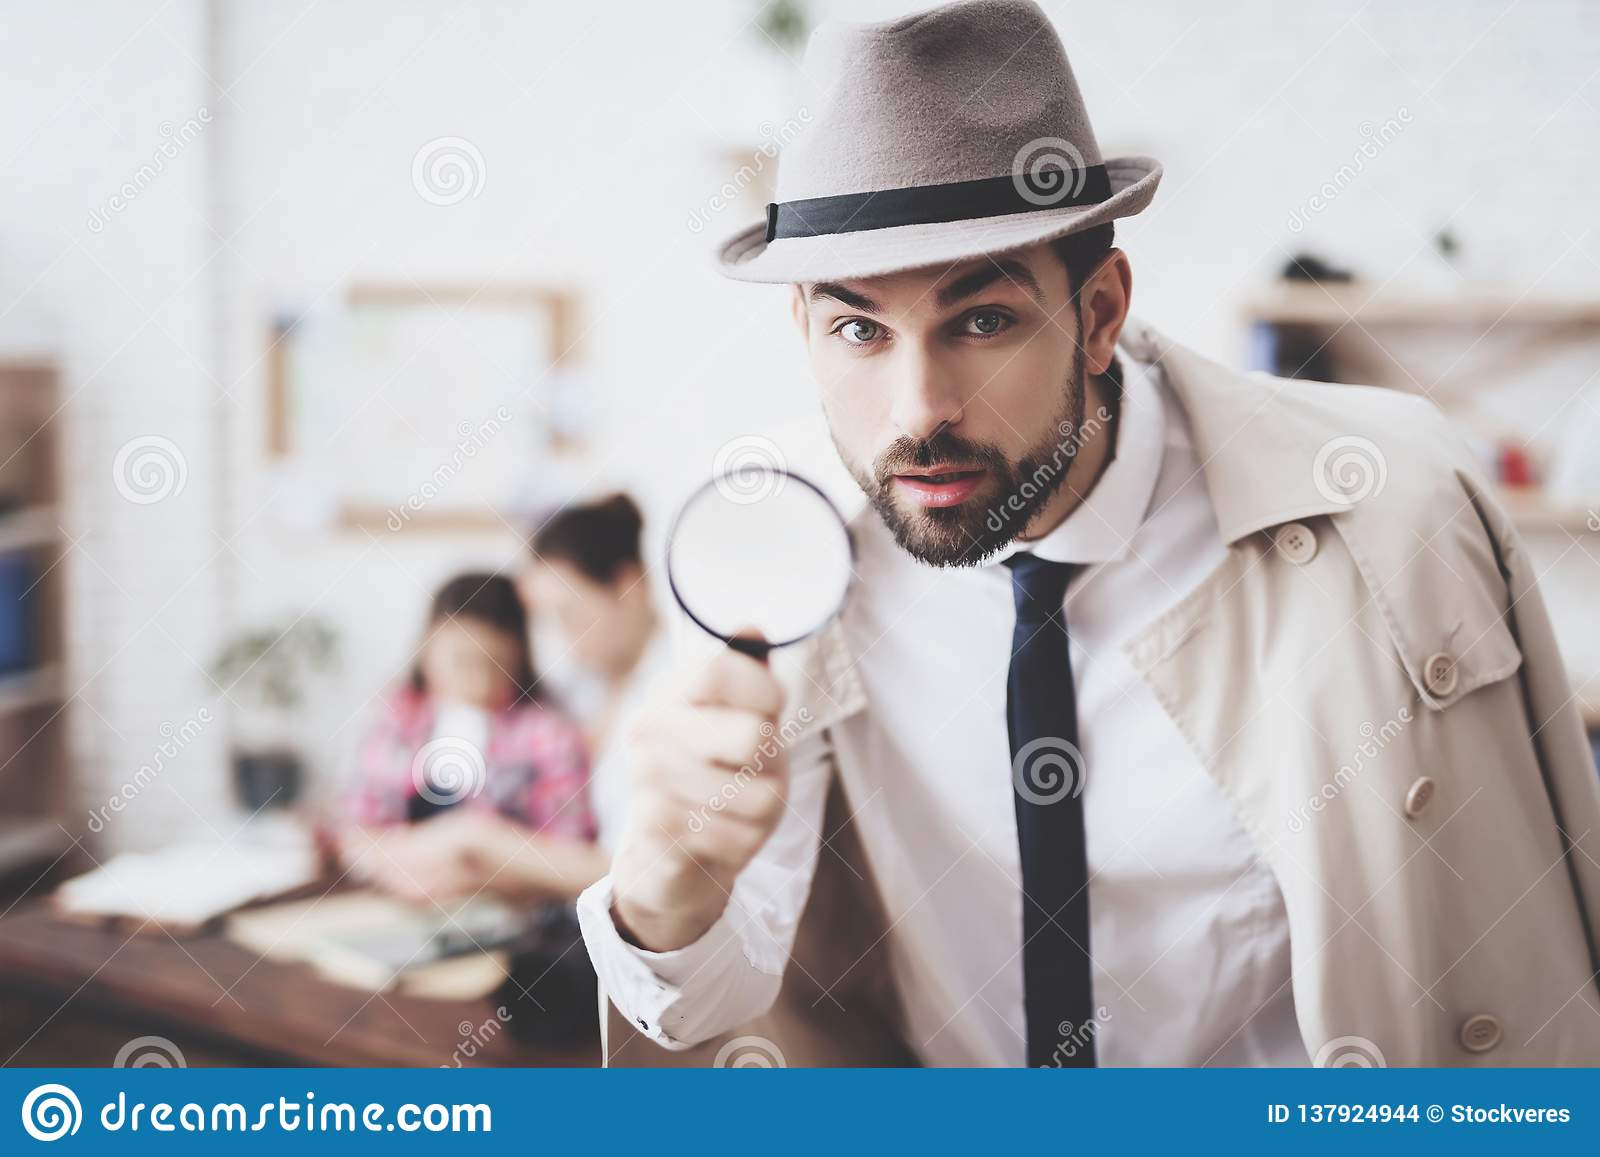 Private detective agency. Man is posing with magnifying glass, woman is holding her daughter.